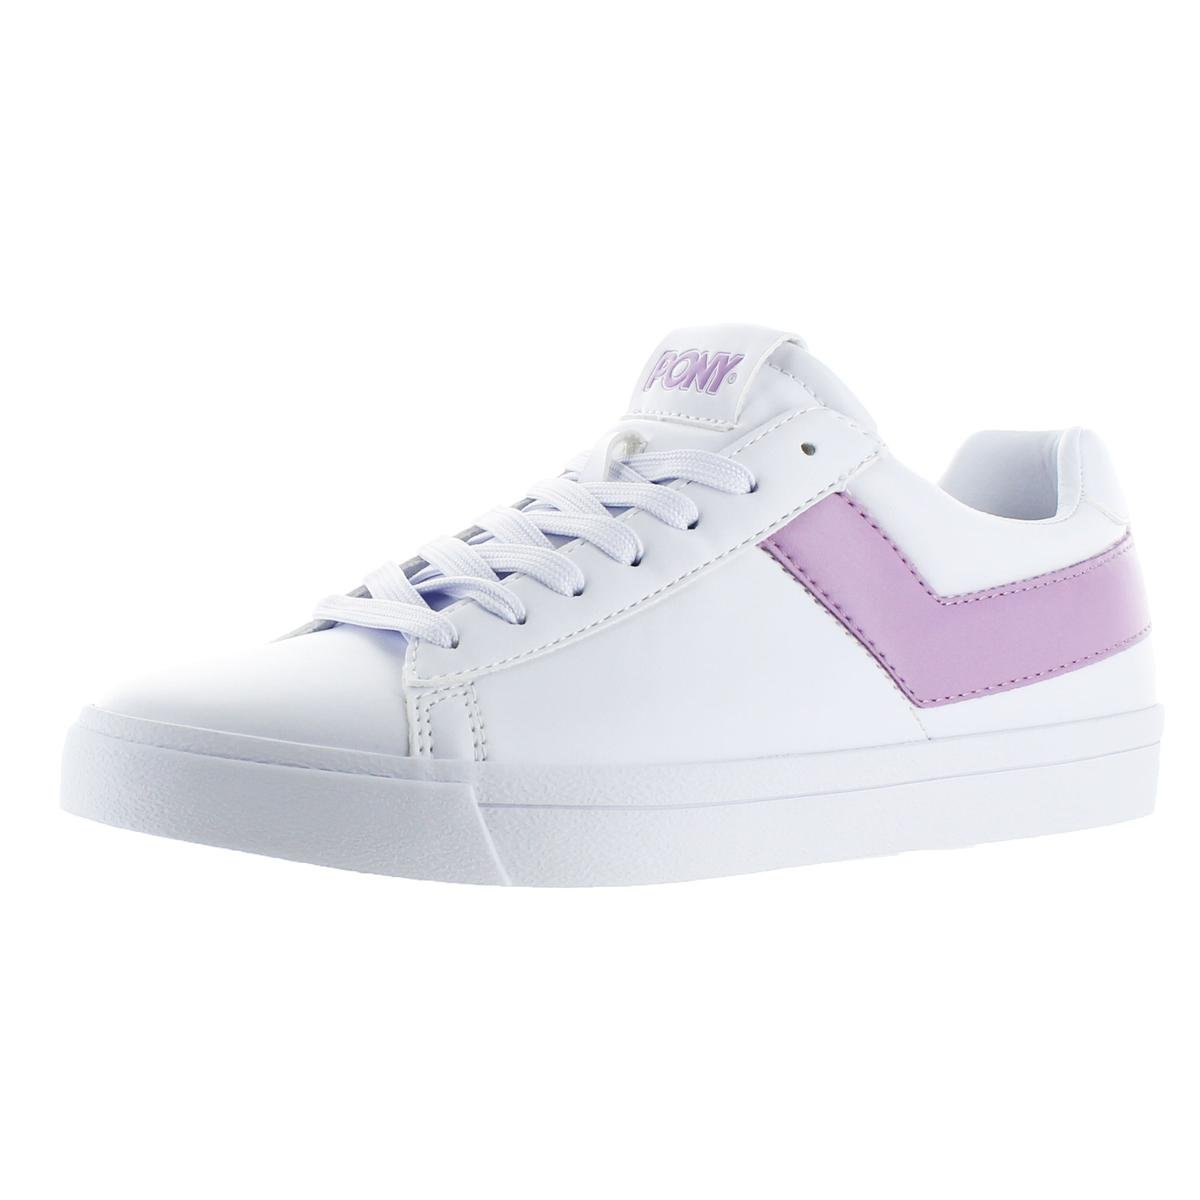 Pony Top Star Core Women's Retro Fashion Sneaker Shoes B07CR4WFYZ 7.5 M US|White/Orchid